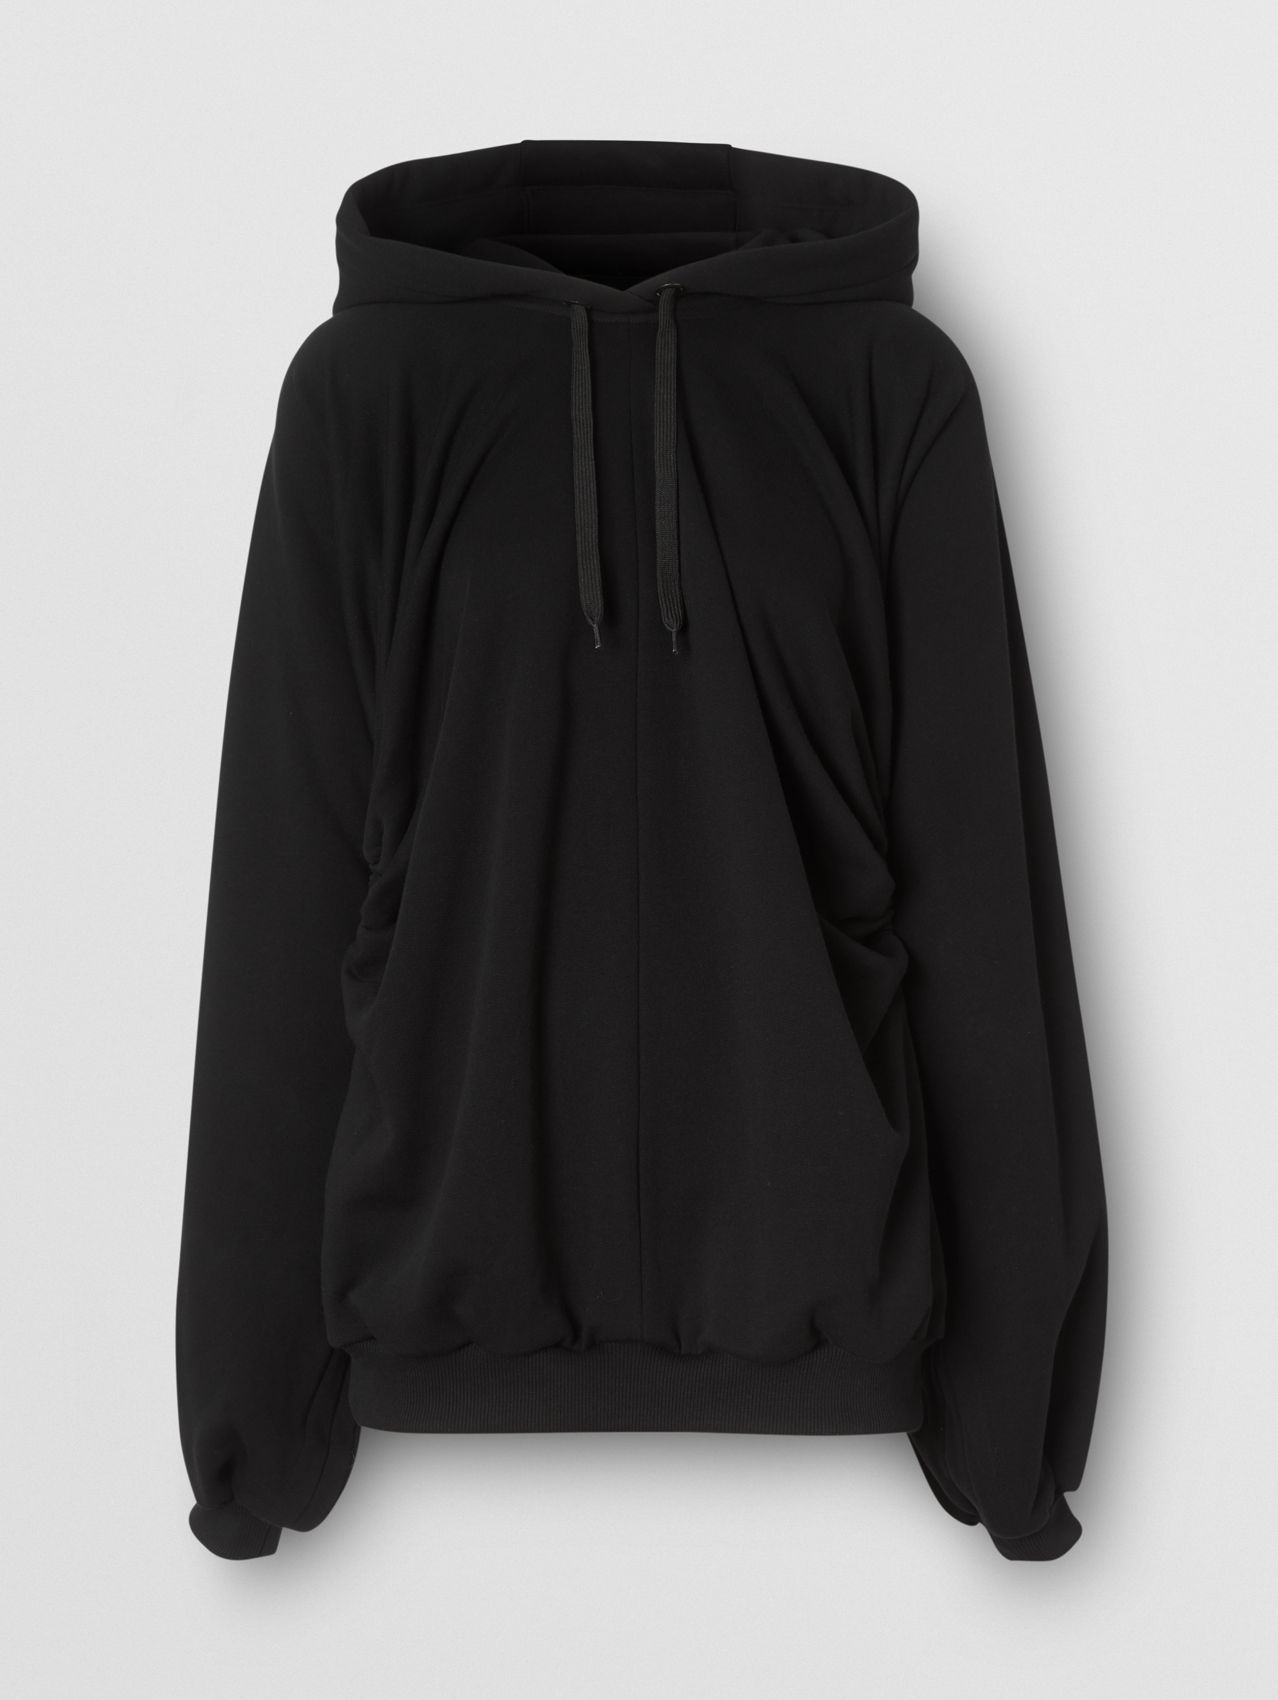 Location Print Gathered Cotton Oversized Hoodie (Black)